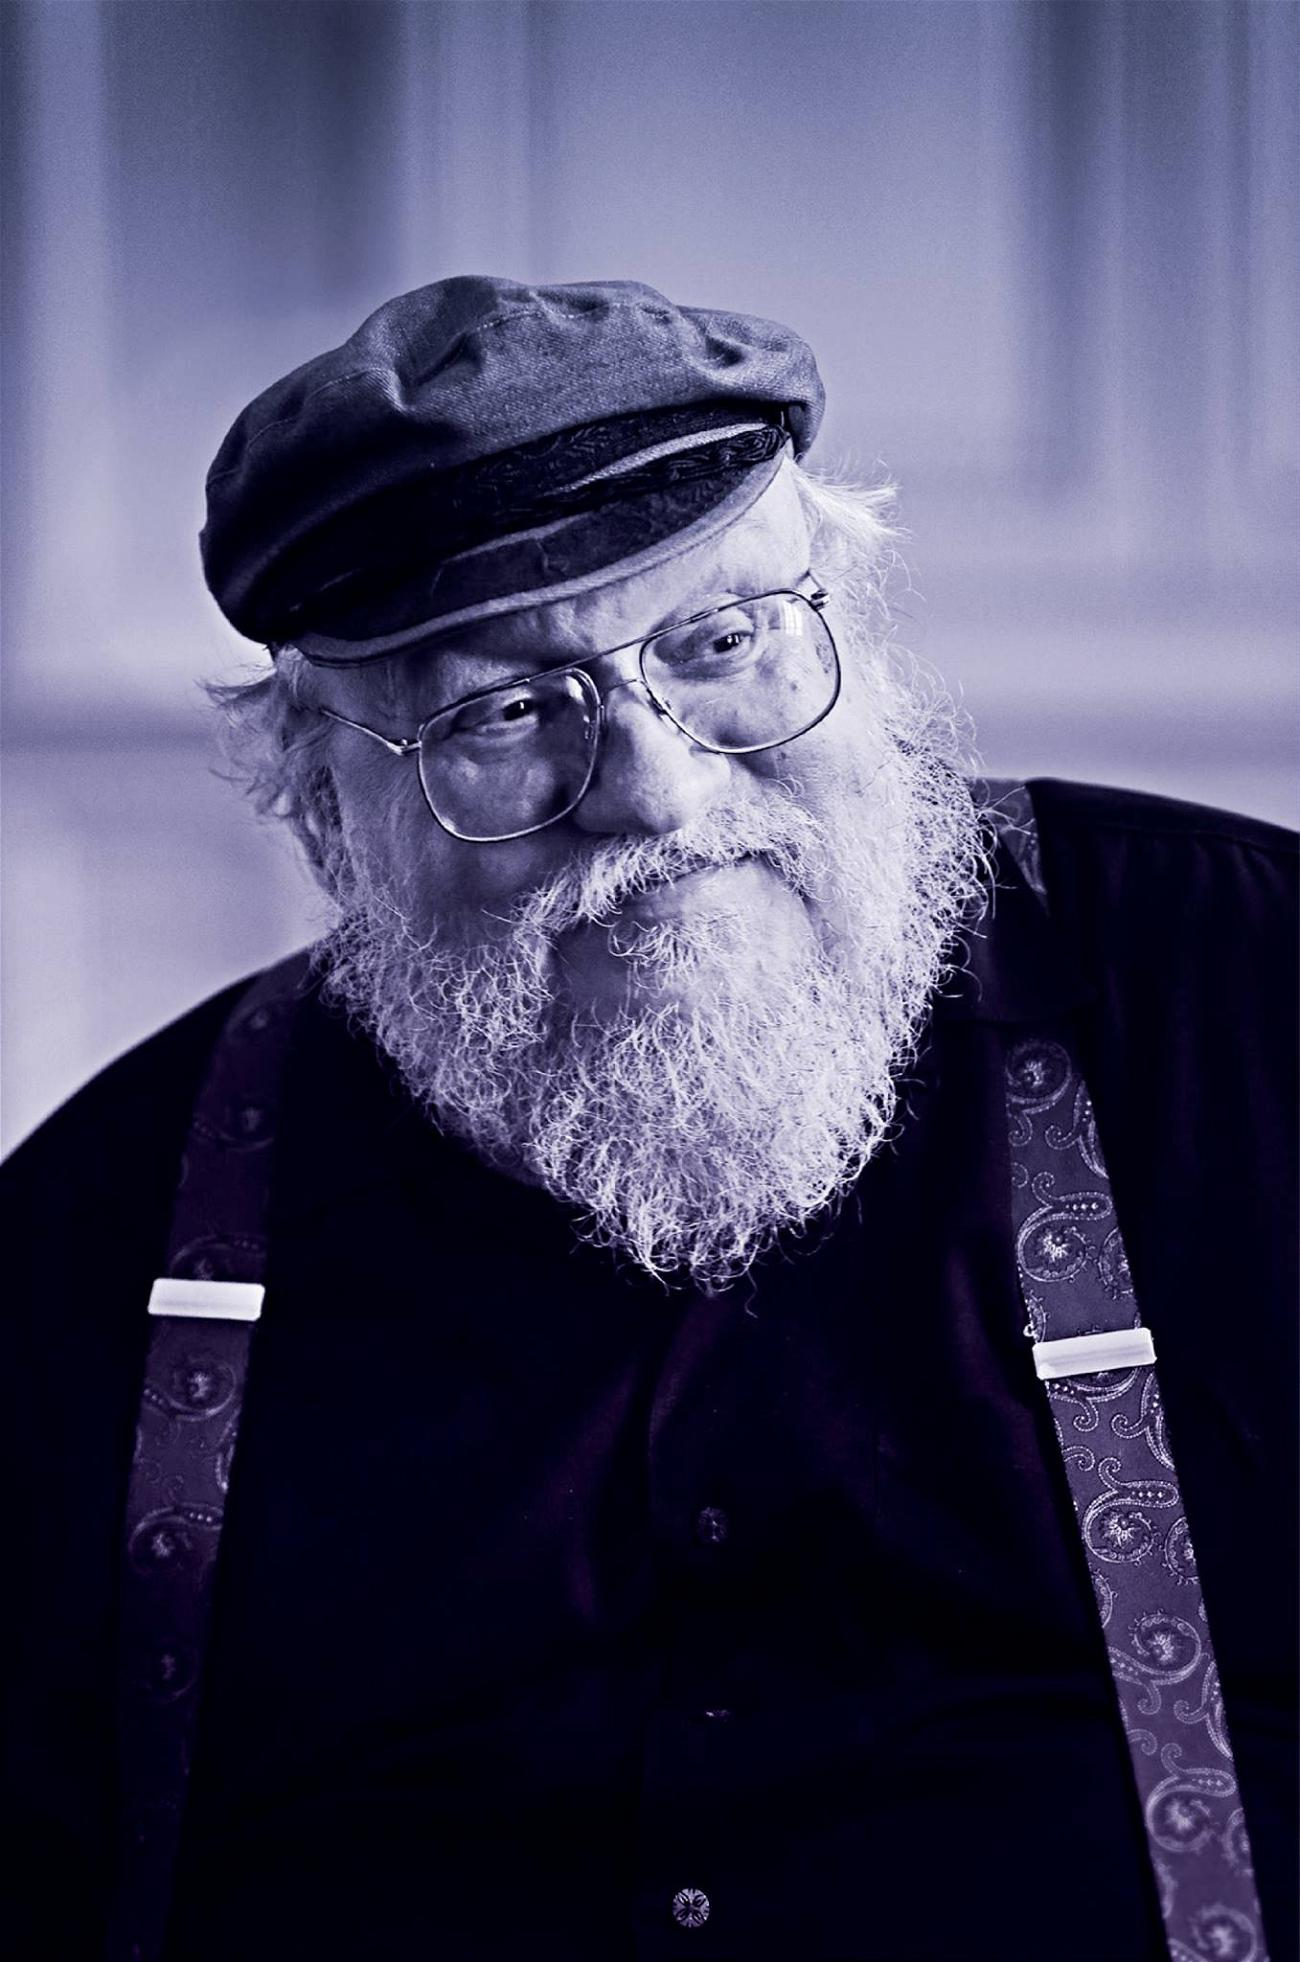 A photo of George RR Martin